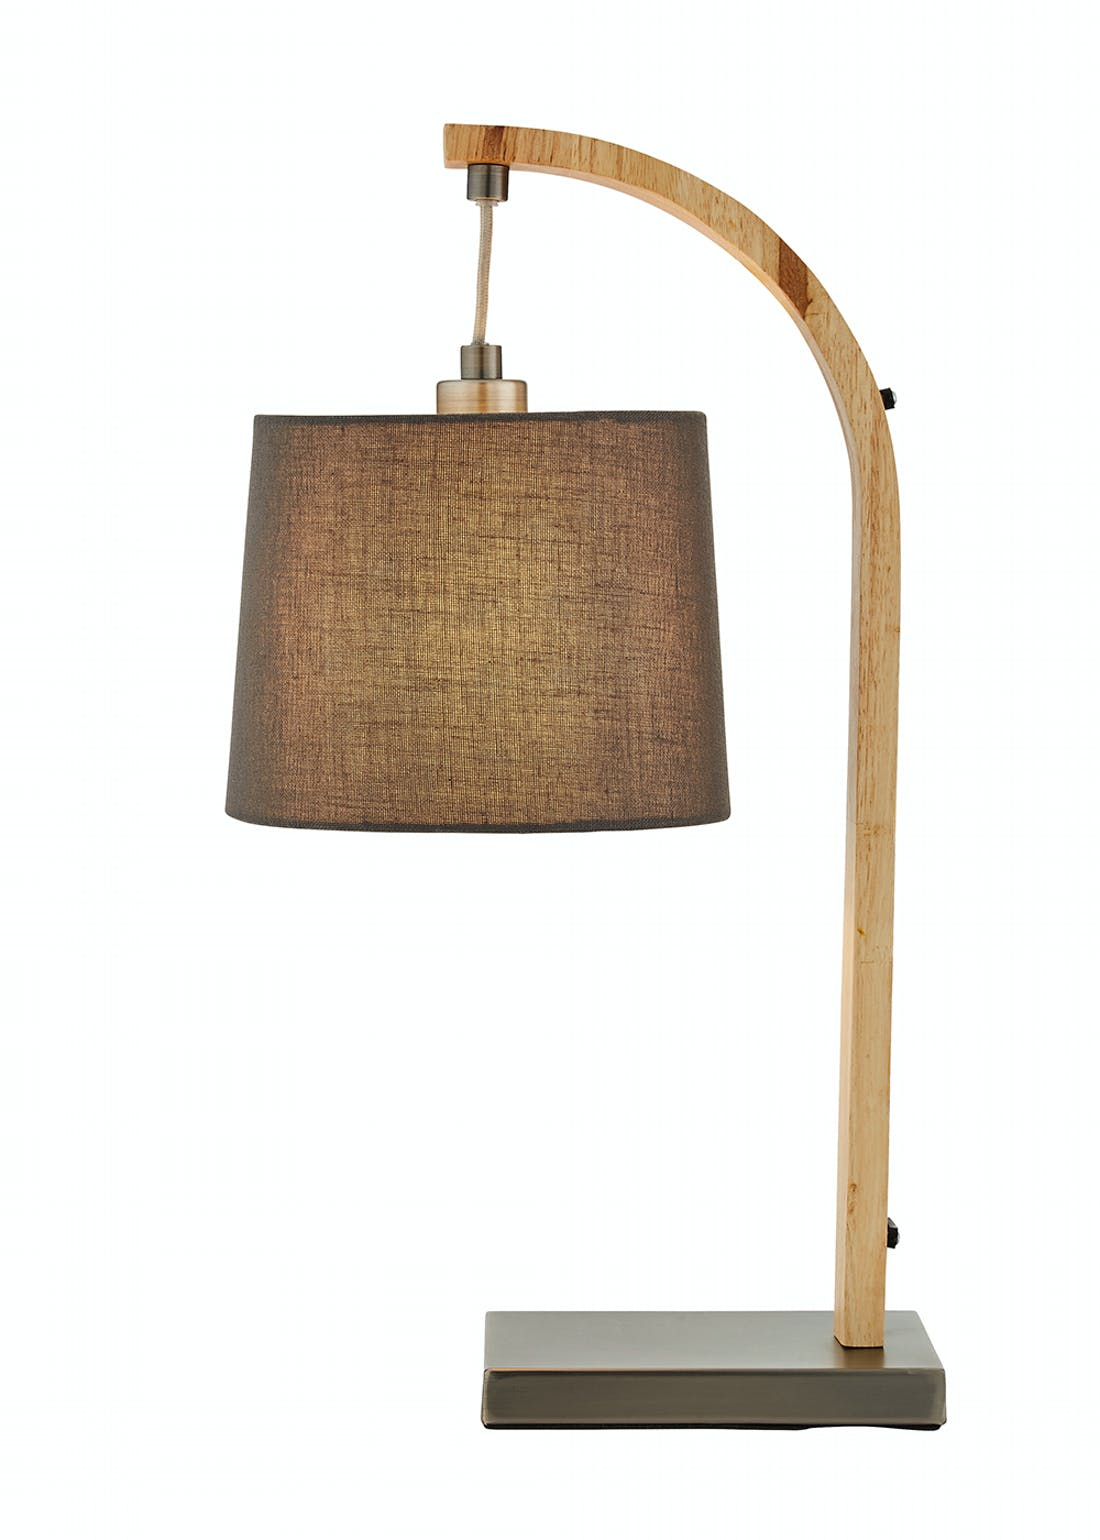 Hanging Shade Table Lamp (45cm x 18cm x 26cm)